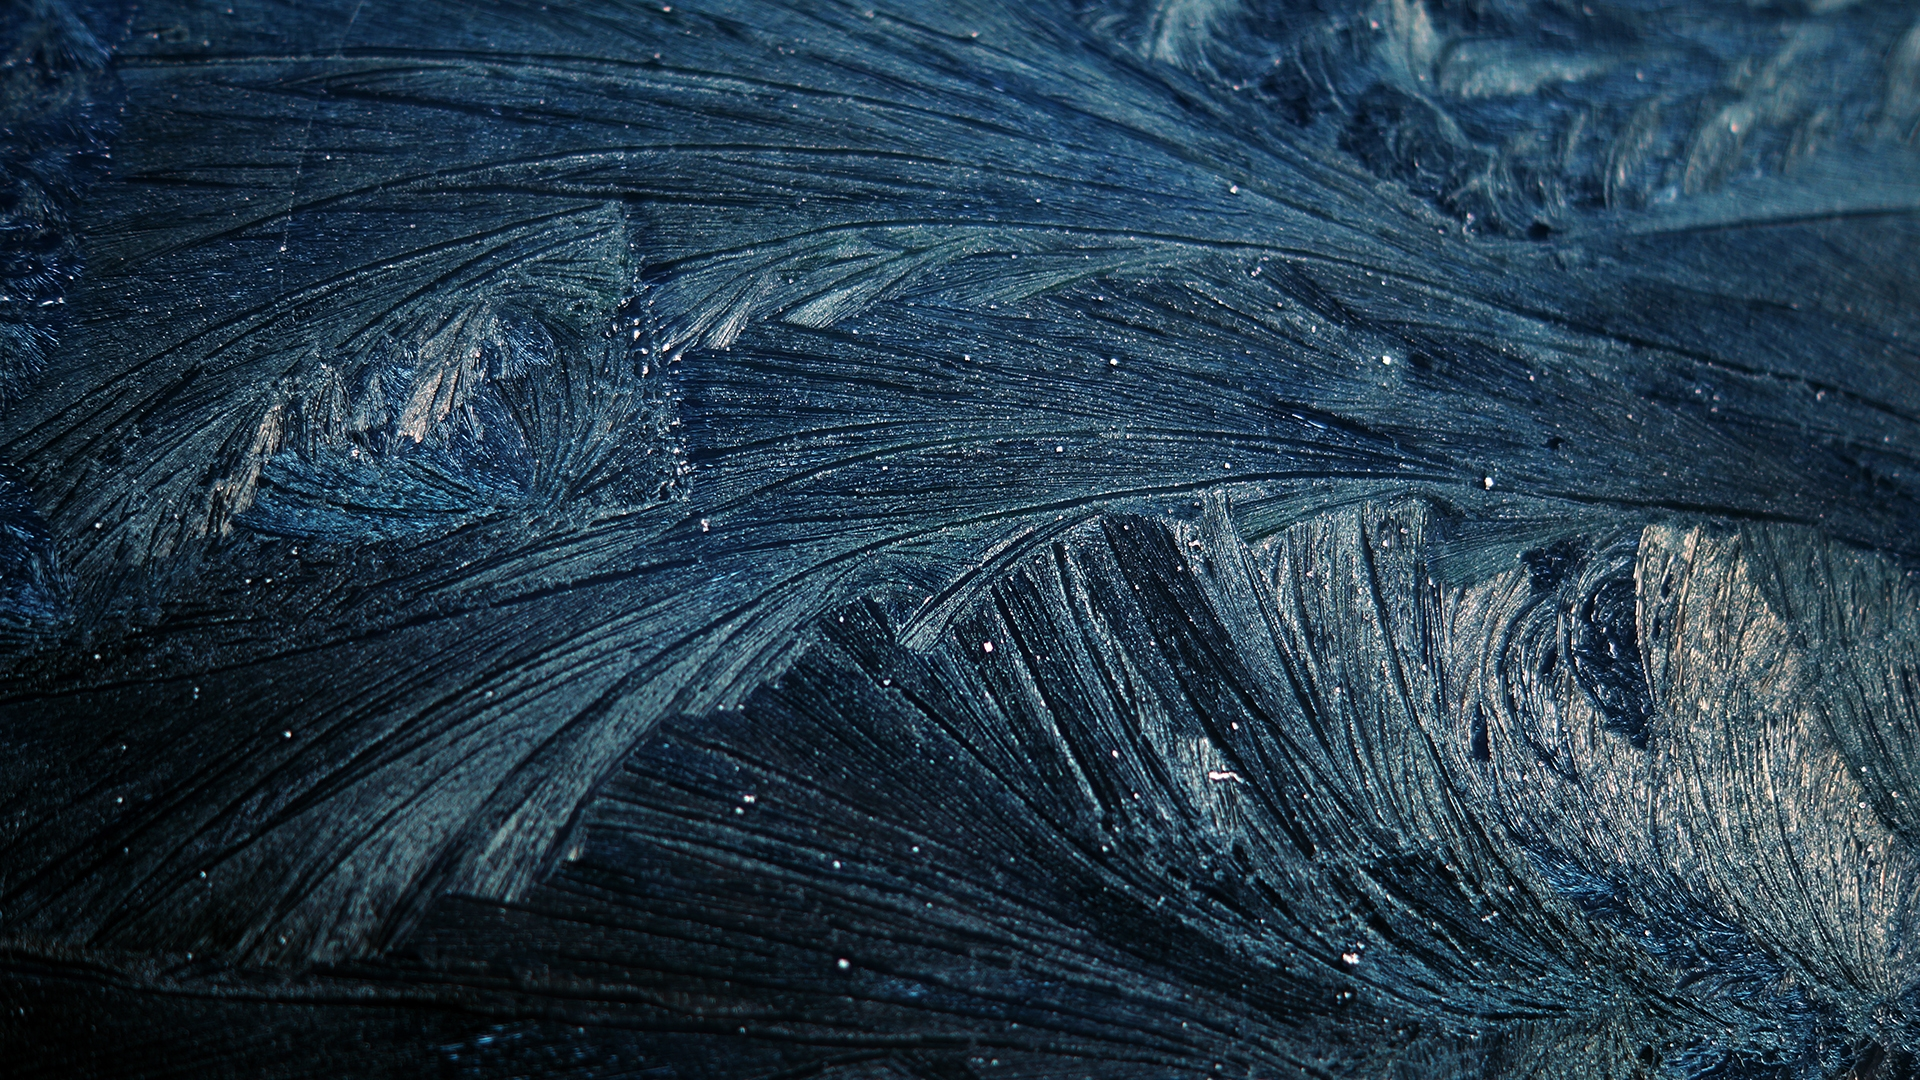 Download wallpaper 1920x1080 pattern frost cold twigs - Hd pattern wallpapers 1080p ...